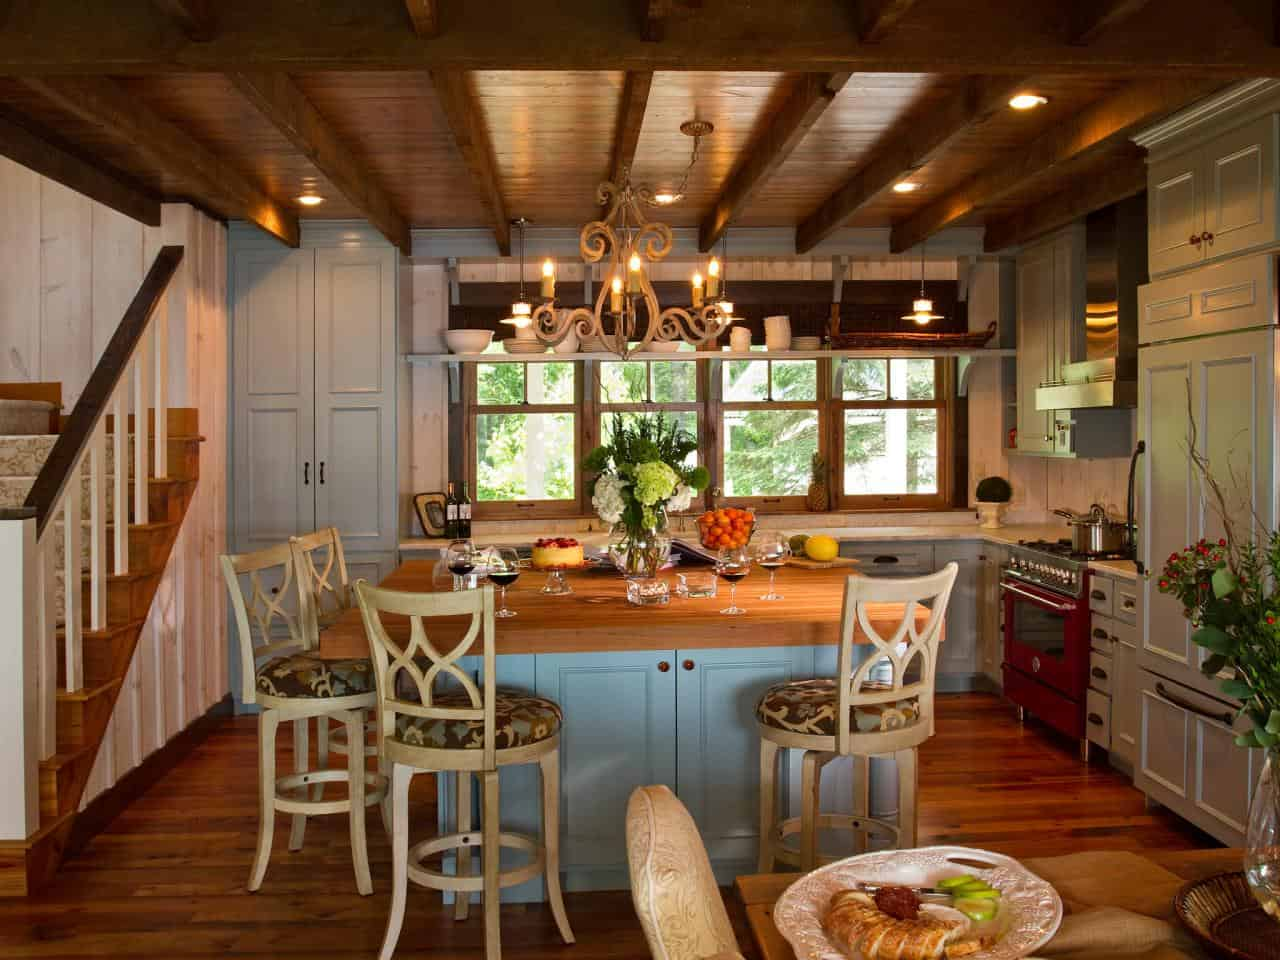 Terracotta works best in the kitchen space because it will flow well with any decor you may already have going on.